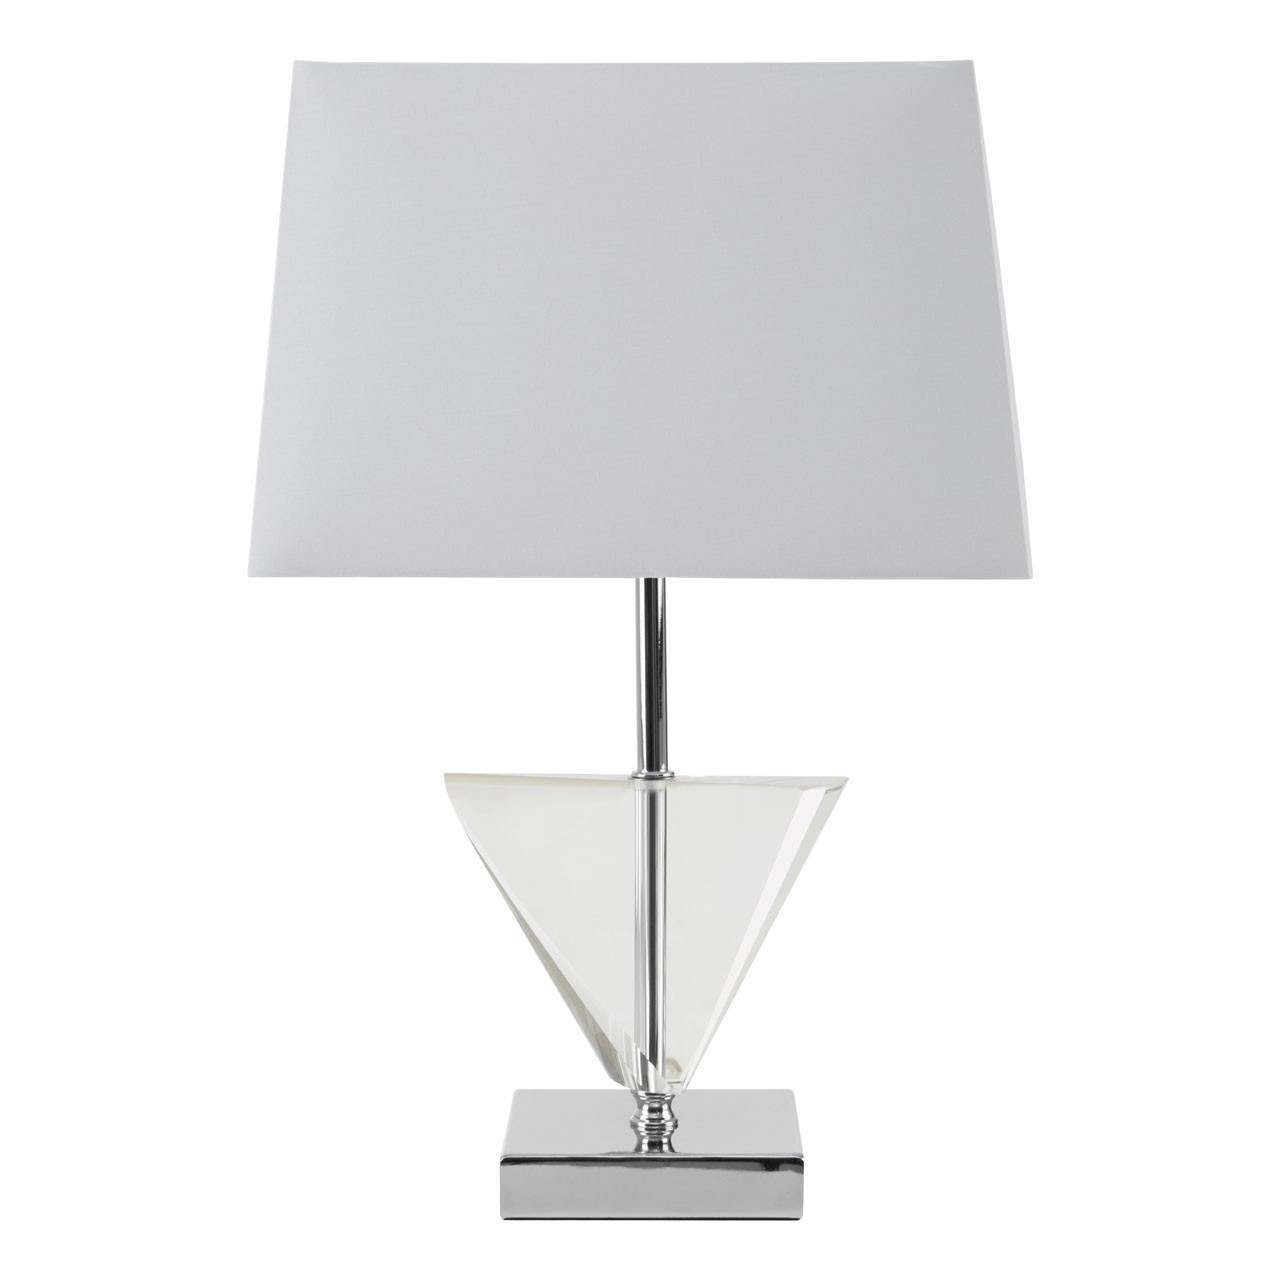 Halina Table Lamp Stylish For Living Bedroom